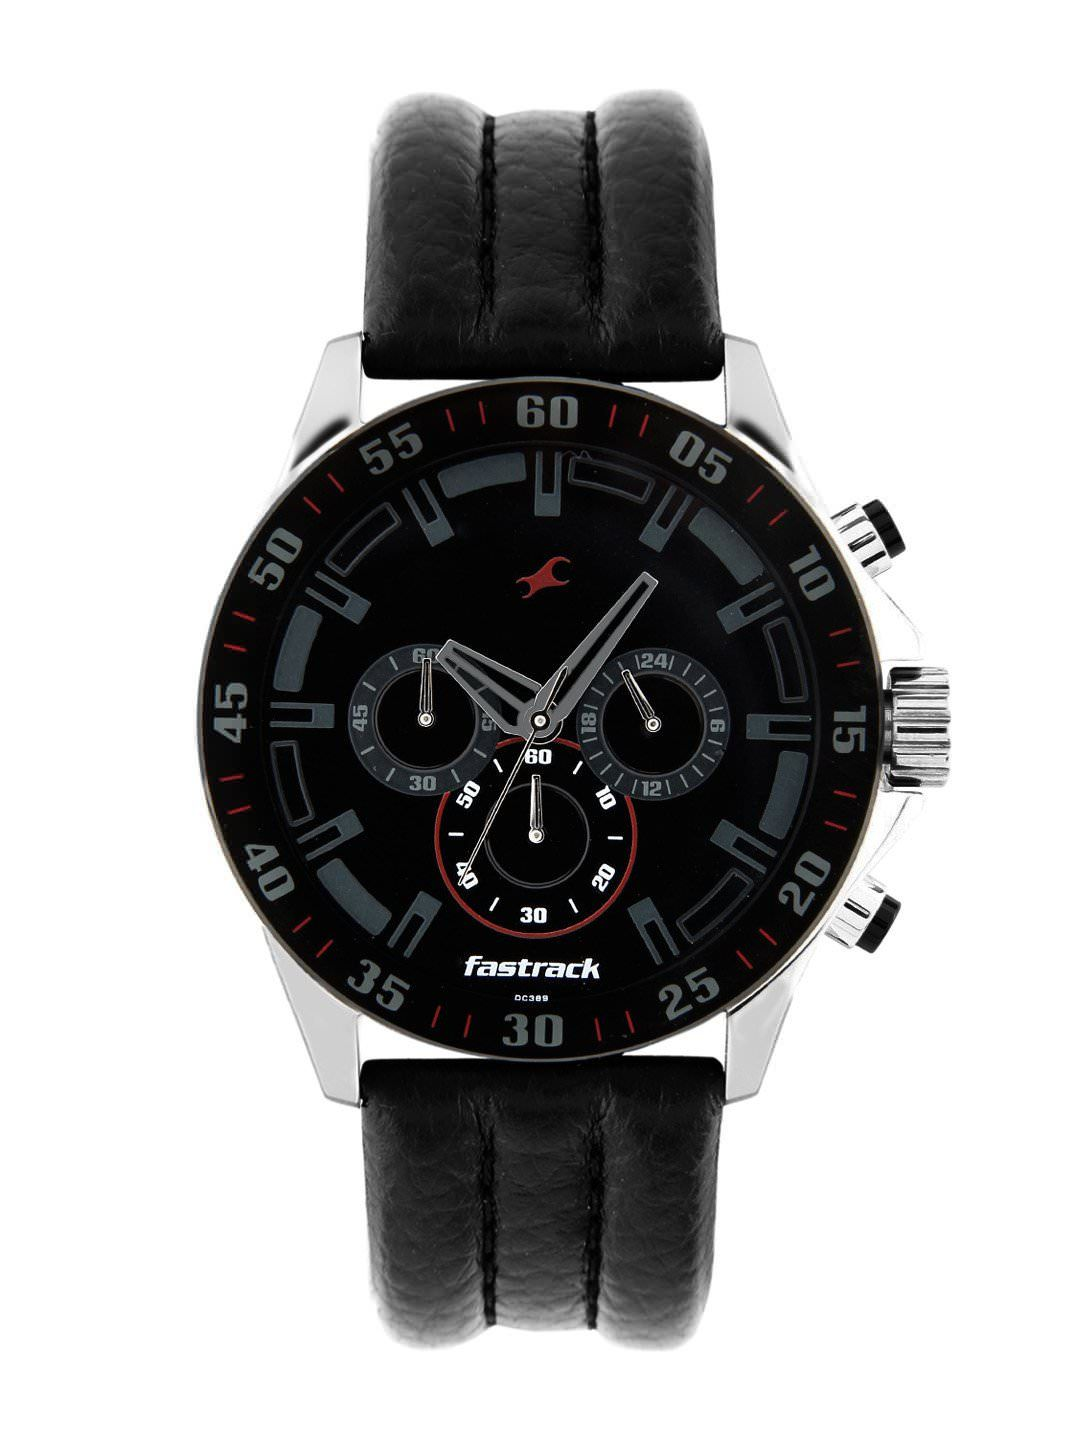 fastrack men black dial watch my passion watches fastrack men black dial watch